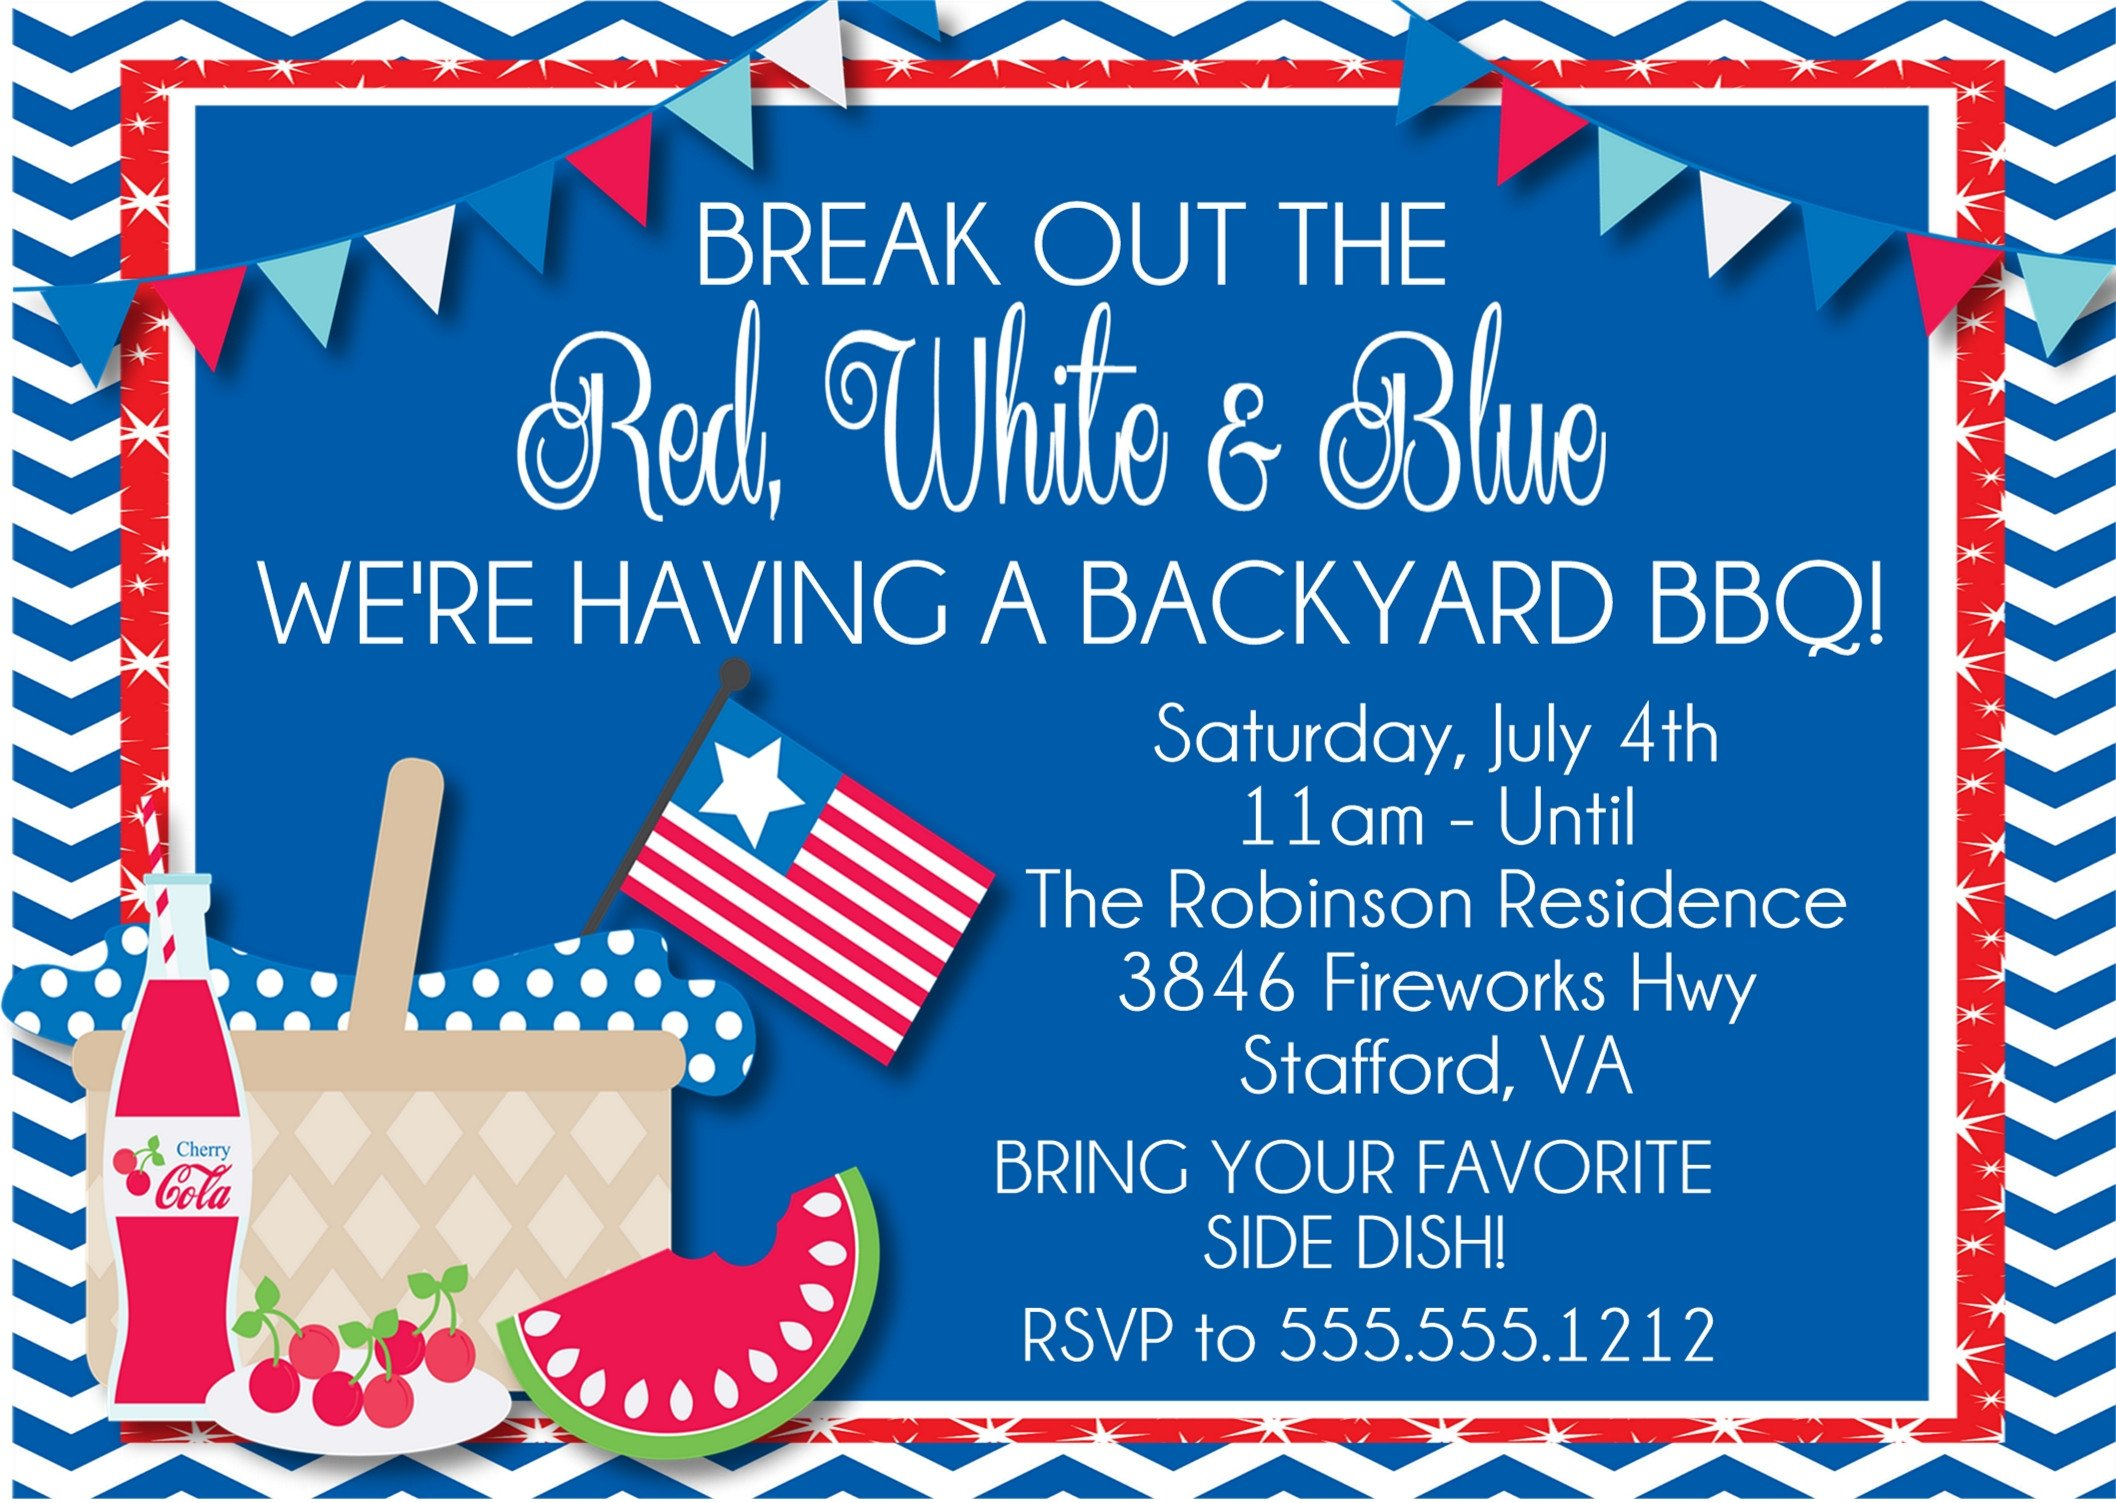 Memorial day party clipart jpg library July 4th or Memorial Day BBQ Invitations jpg library